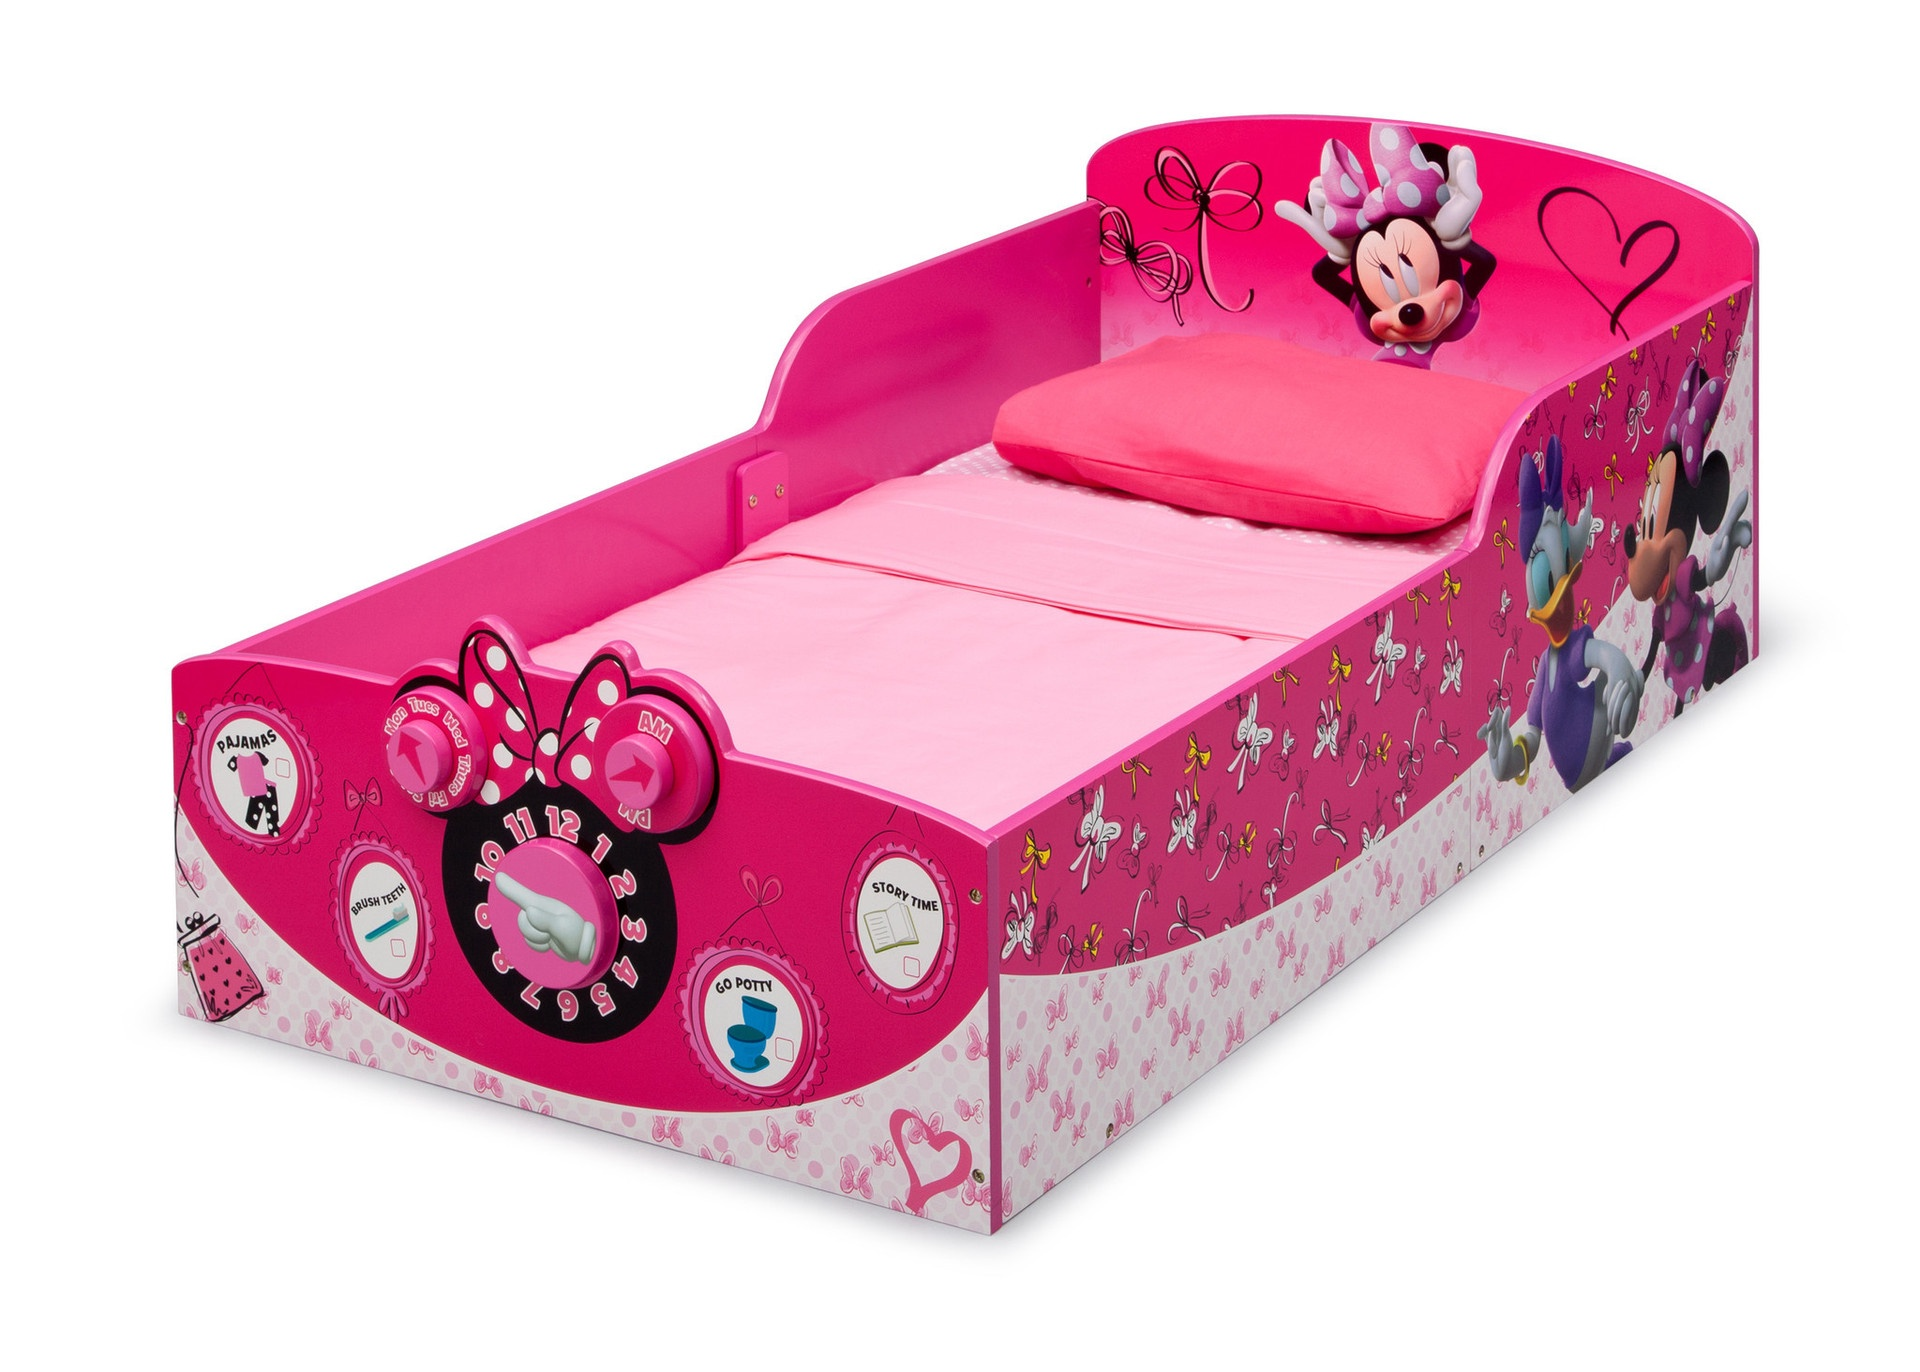 MINNIE MOUSE WOODEN TODDLER BED